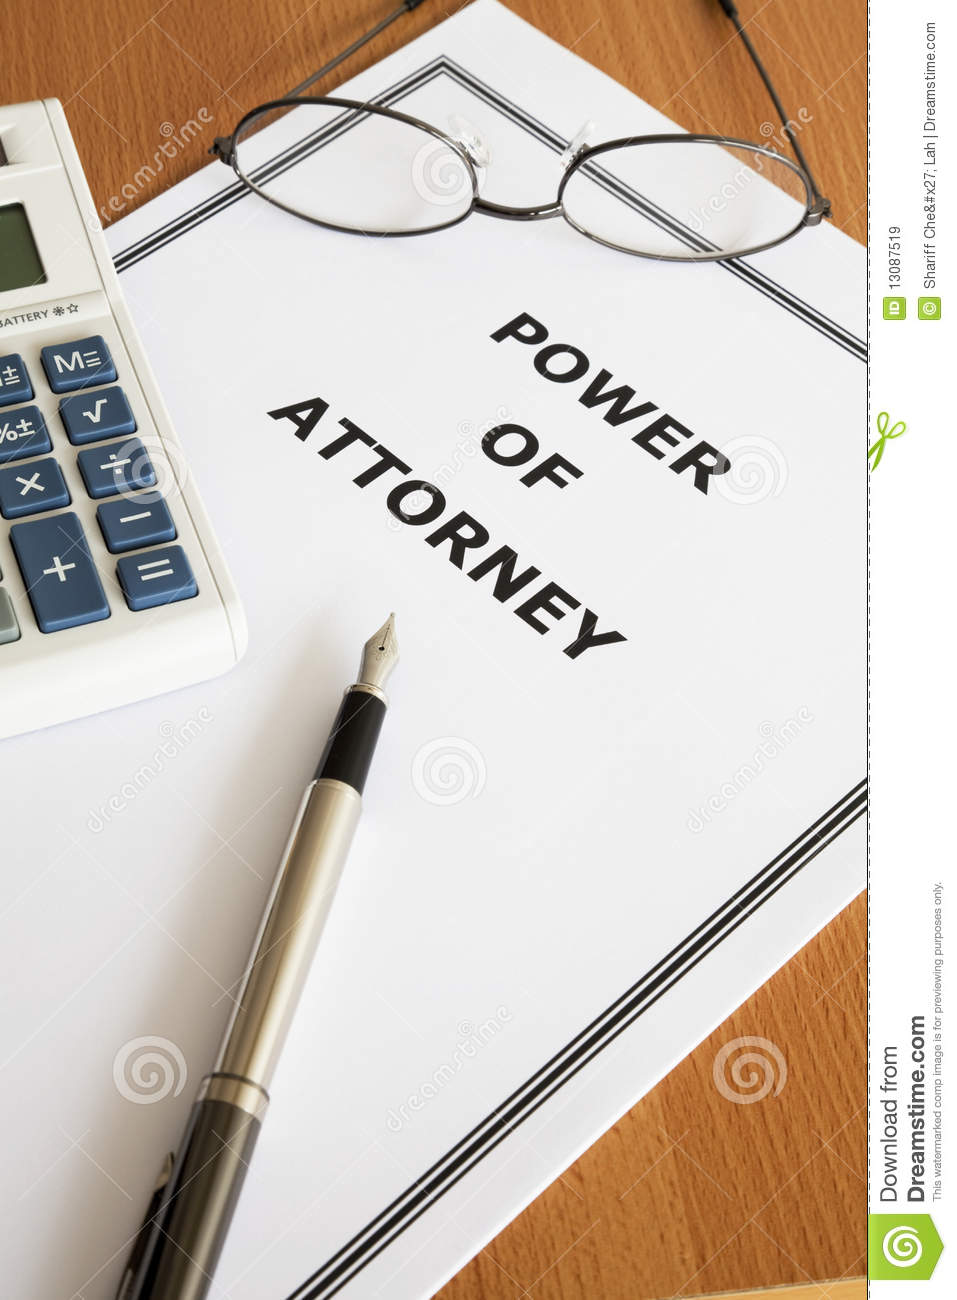 Power Of Attorney Royalty Free Stock Images - Image: 13087519